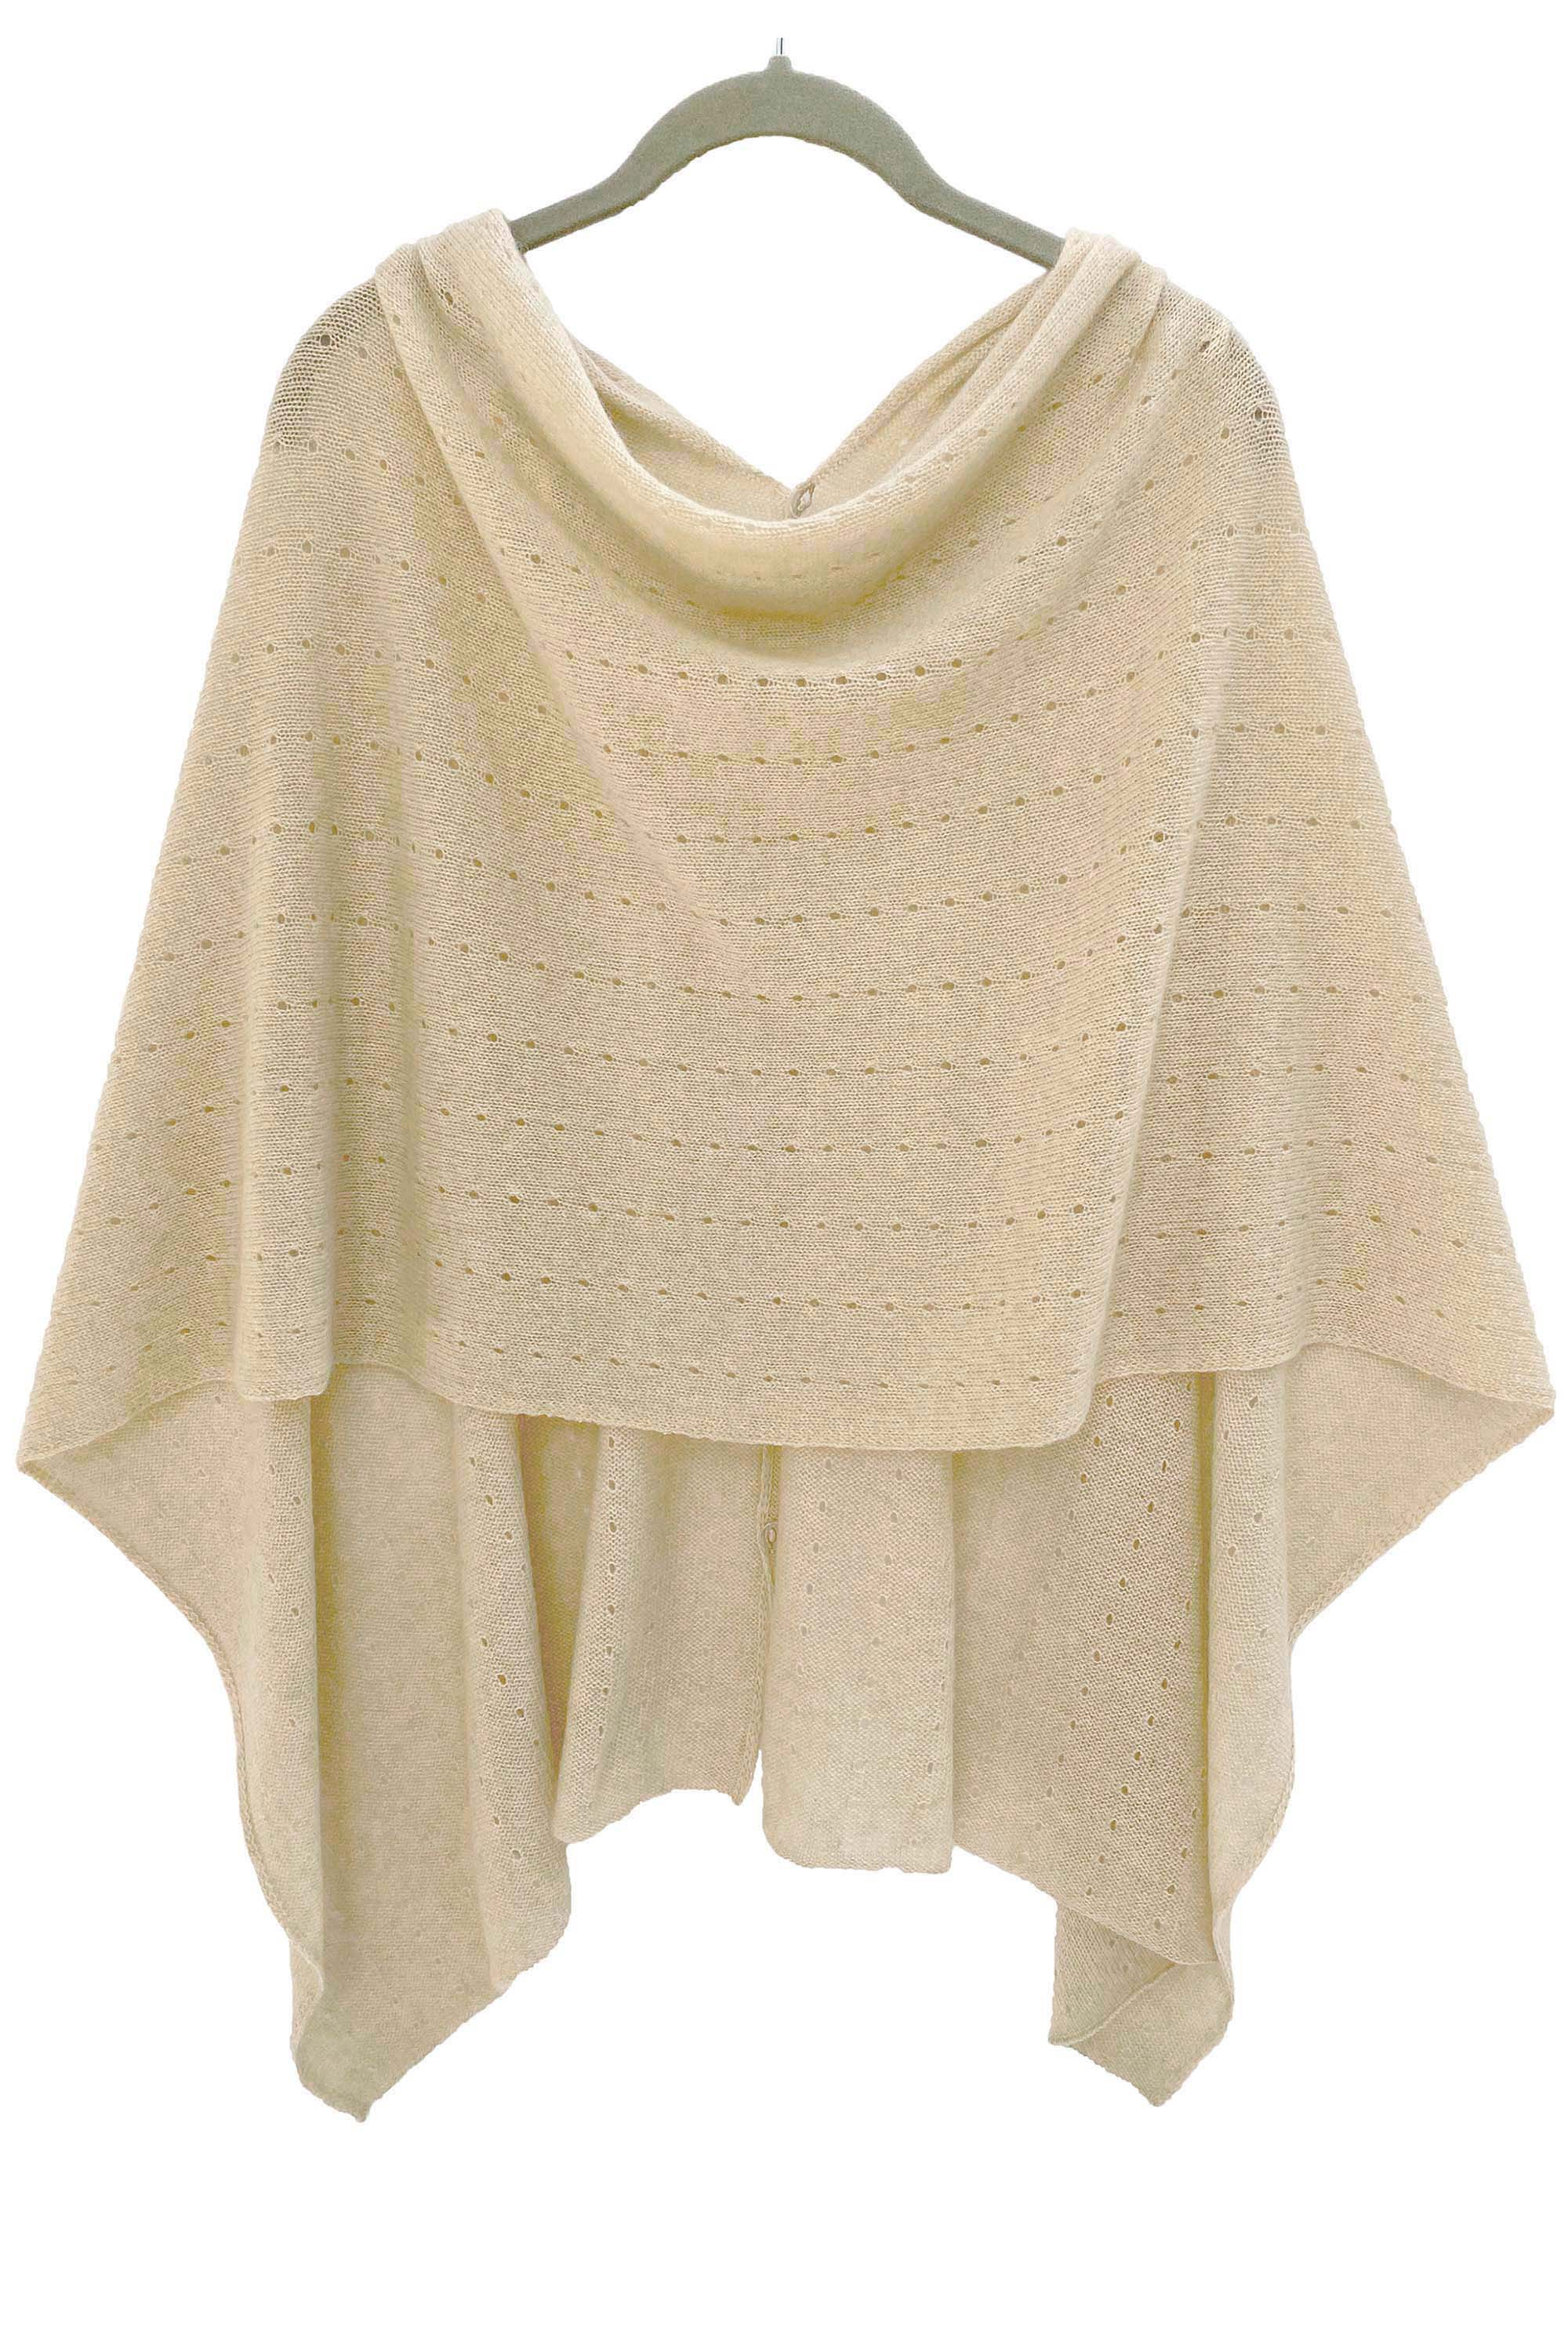 Beige cashmere poncho | Multiway lacy poncho with buttons